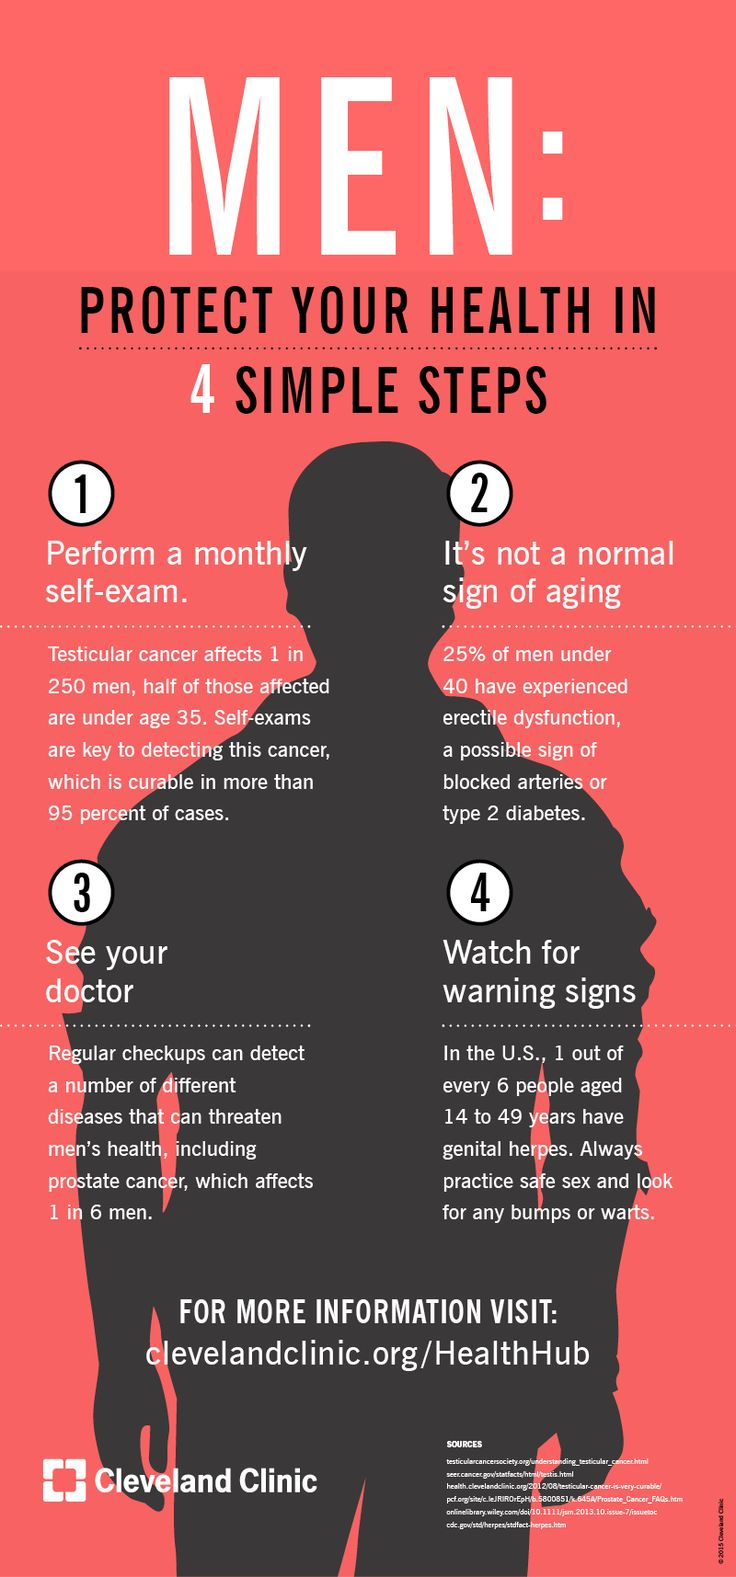 Men: Protect Your Health In 4 Simple Steps #menshealth #infographic